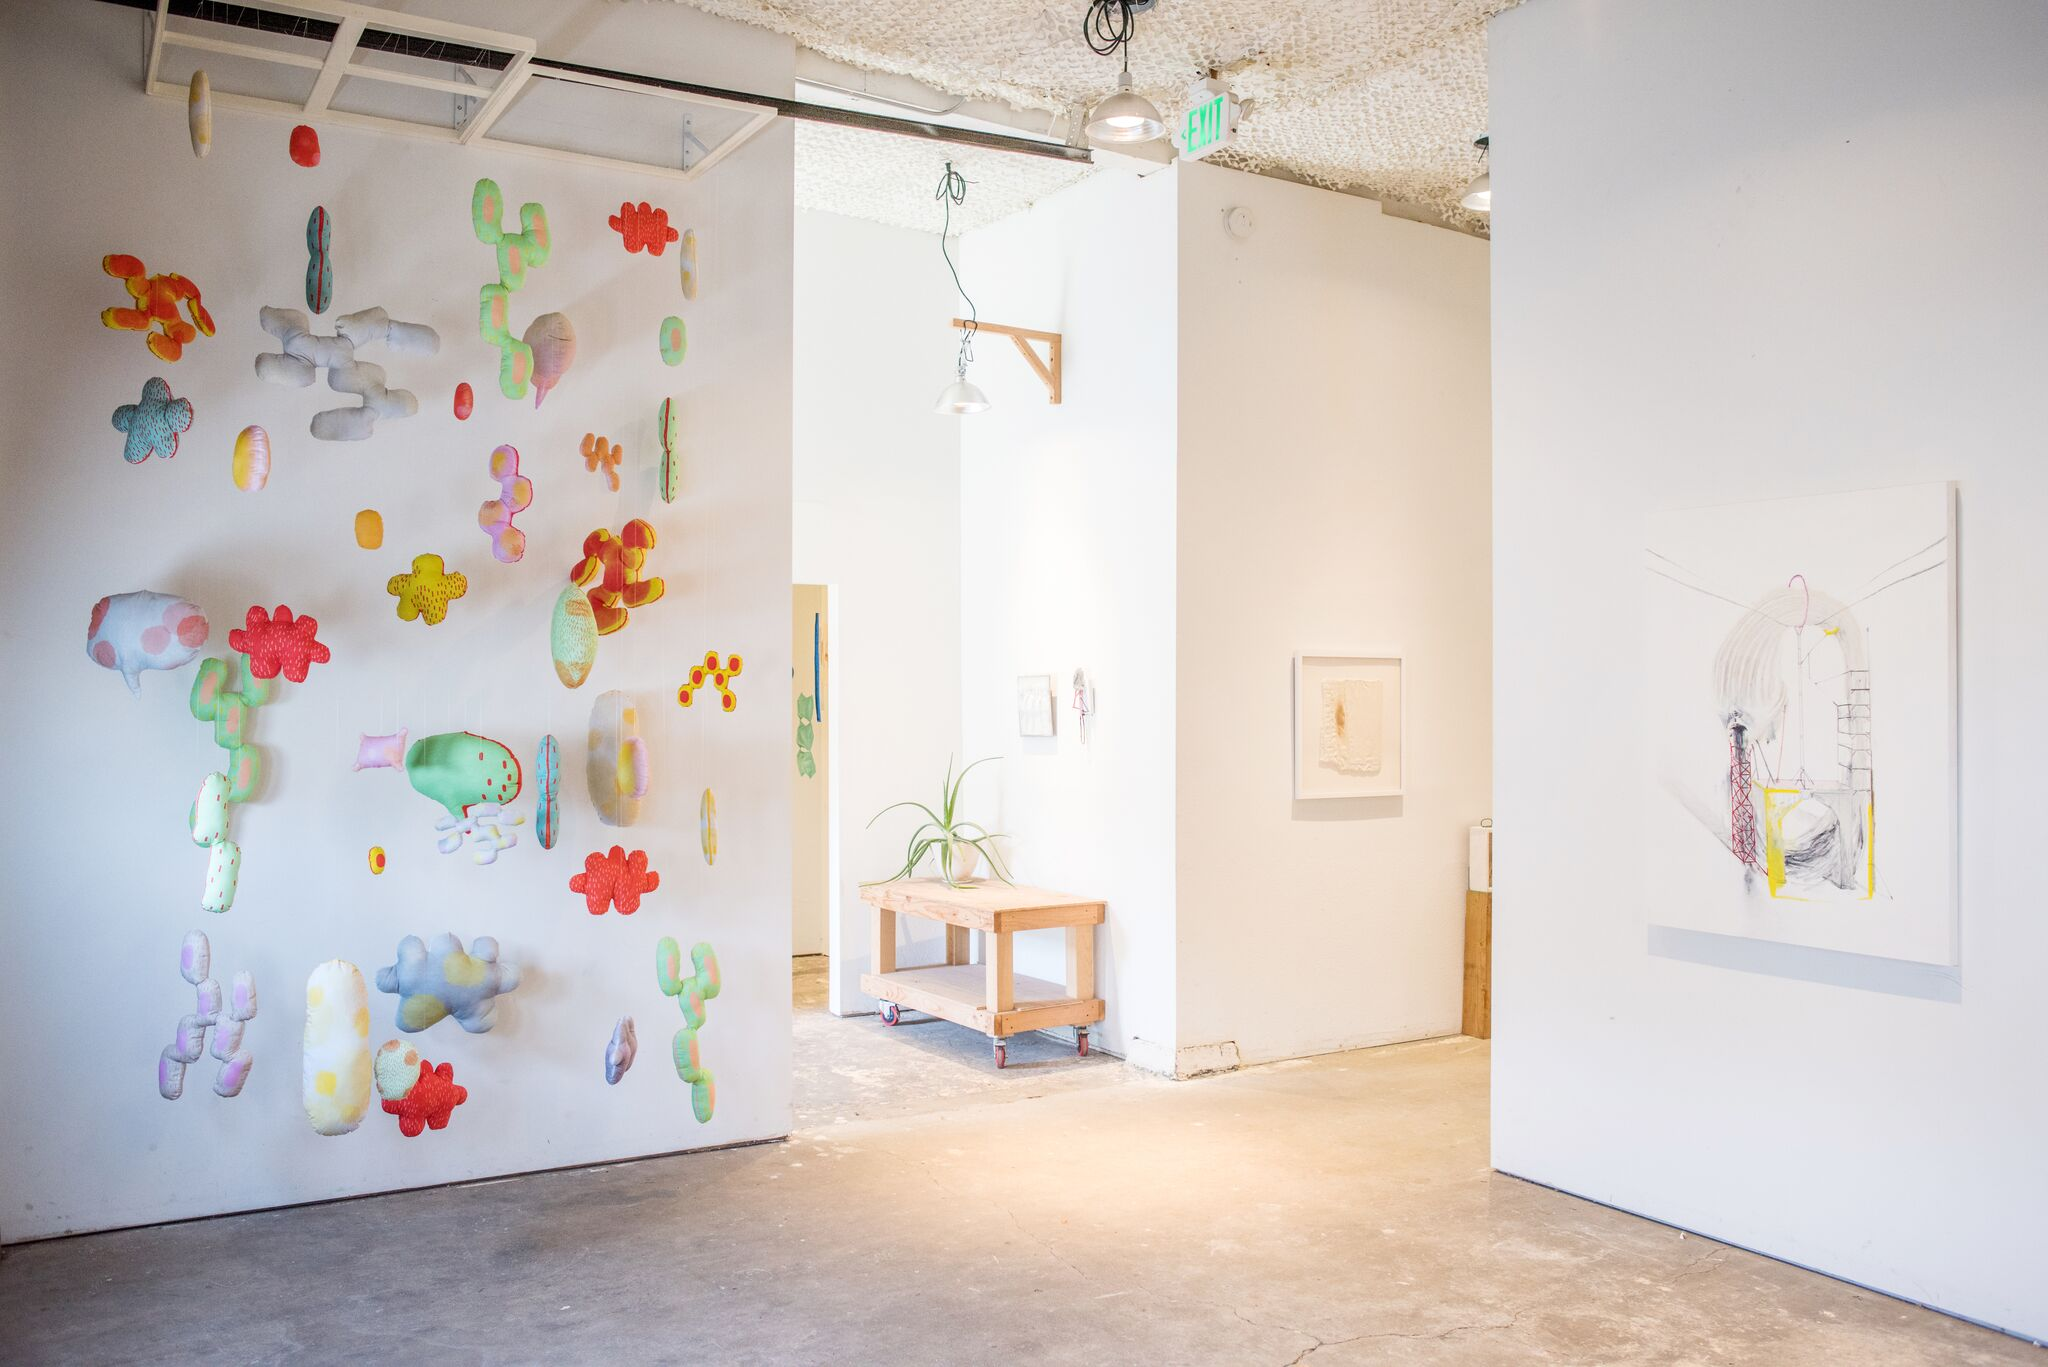 "(Left) Junko Yamamoto, ""Between Consciousness,"" 2018, Soft Sculptures with Wooden Panels, Fishing Wires, Bolts (Far Right) Lydia Goldbeck, ""Untitled,"" 2018, Lithograph, Oil Stick, Graphite Powder, Pencil, Acrylic, Oil, Charcoal, Colored Pencil, Oil Pastel on Panel. Photo courtesy of  Alex Connelly."